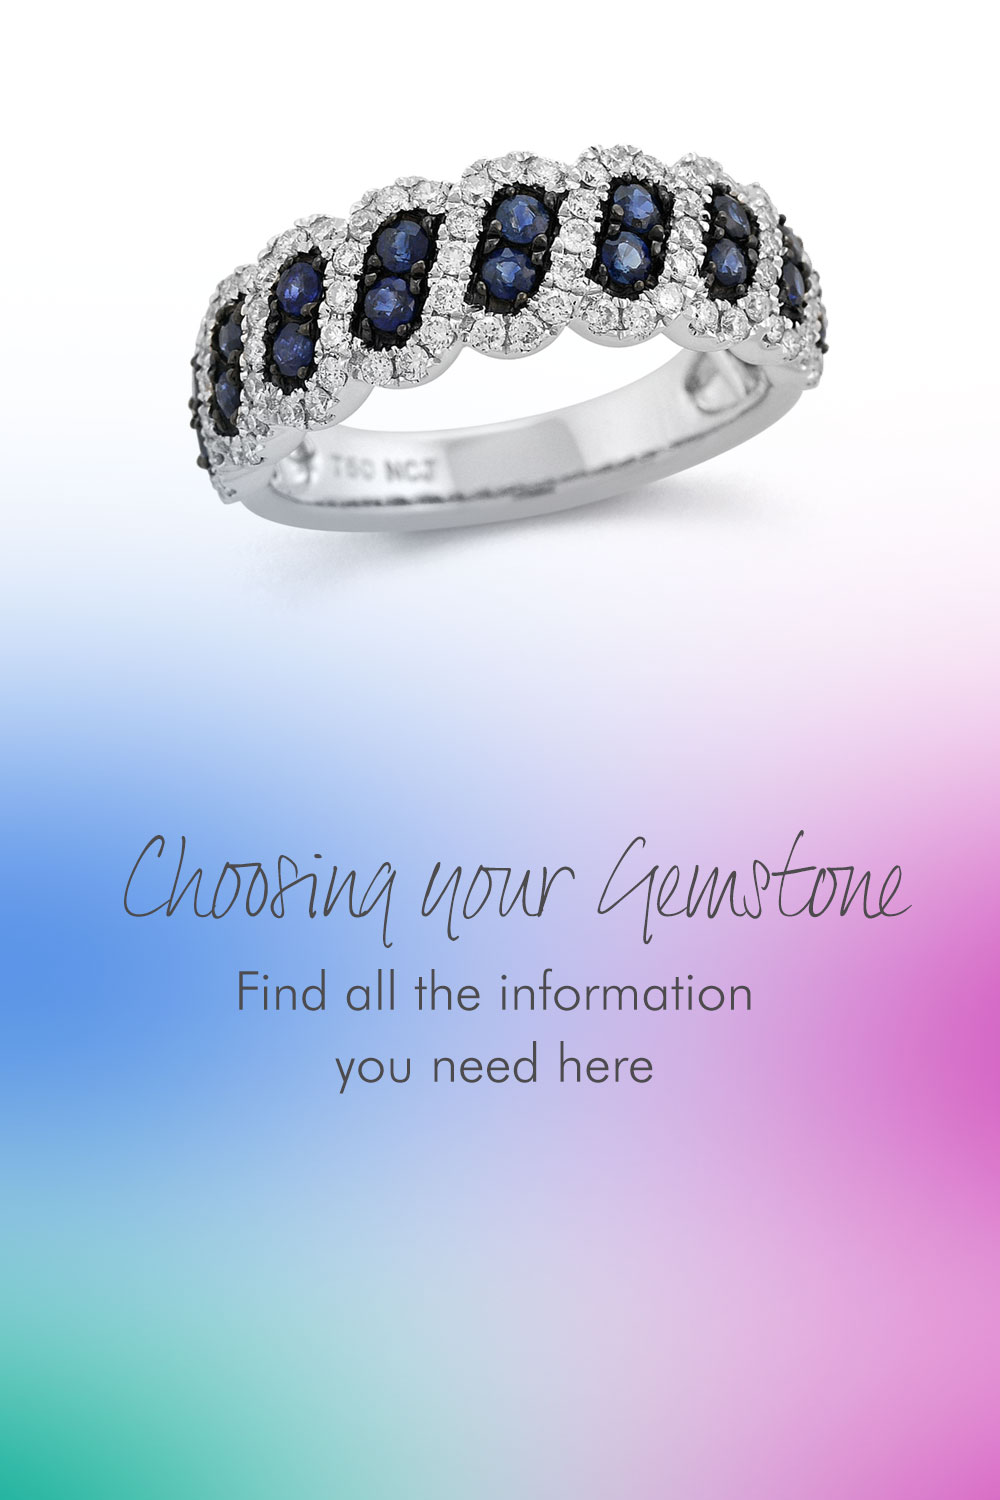 Choosing your gemstone, Gemstones, Drakes Jewellers, Drakes Jewellers Gemstones